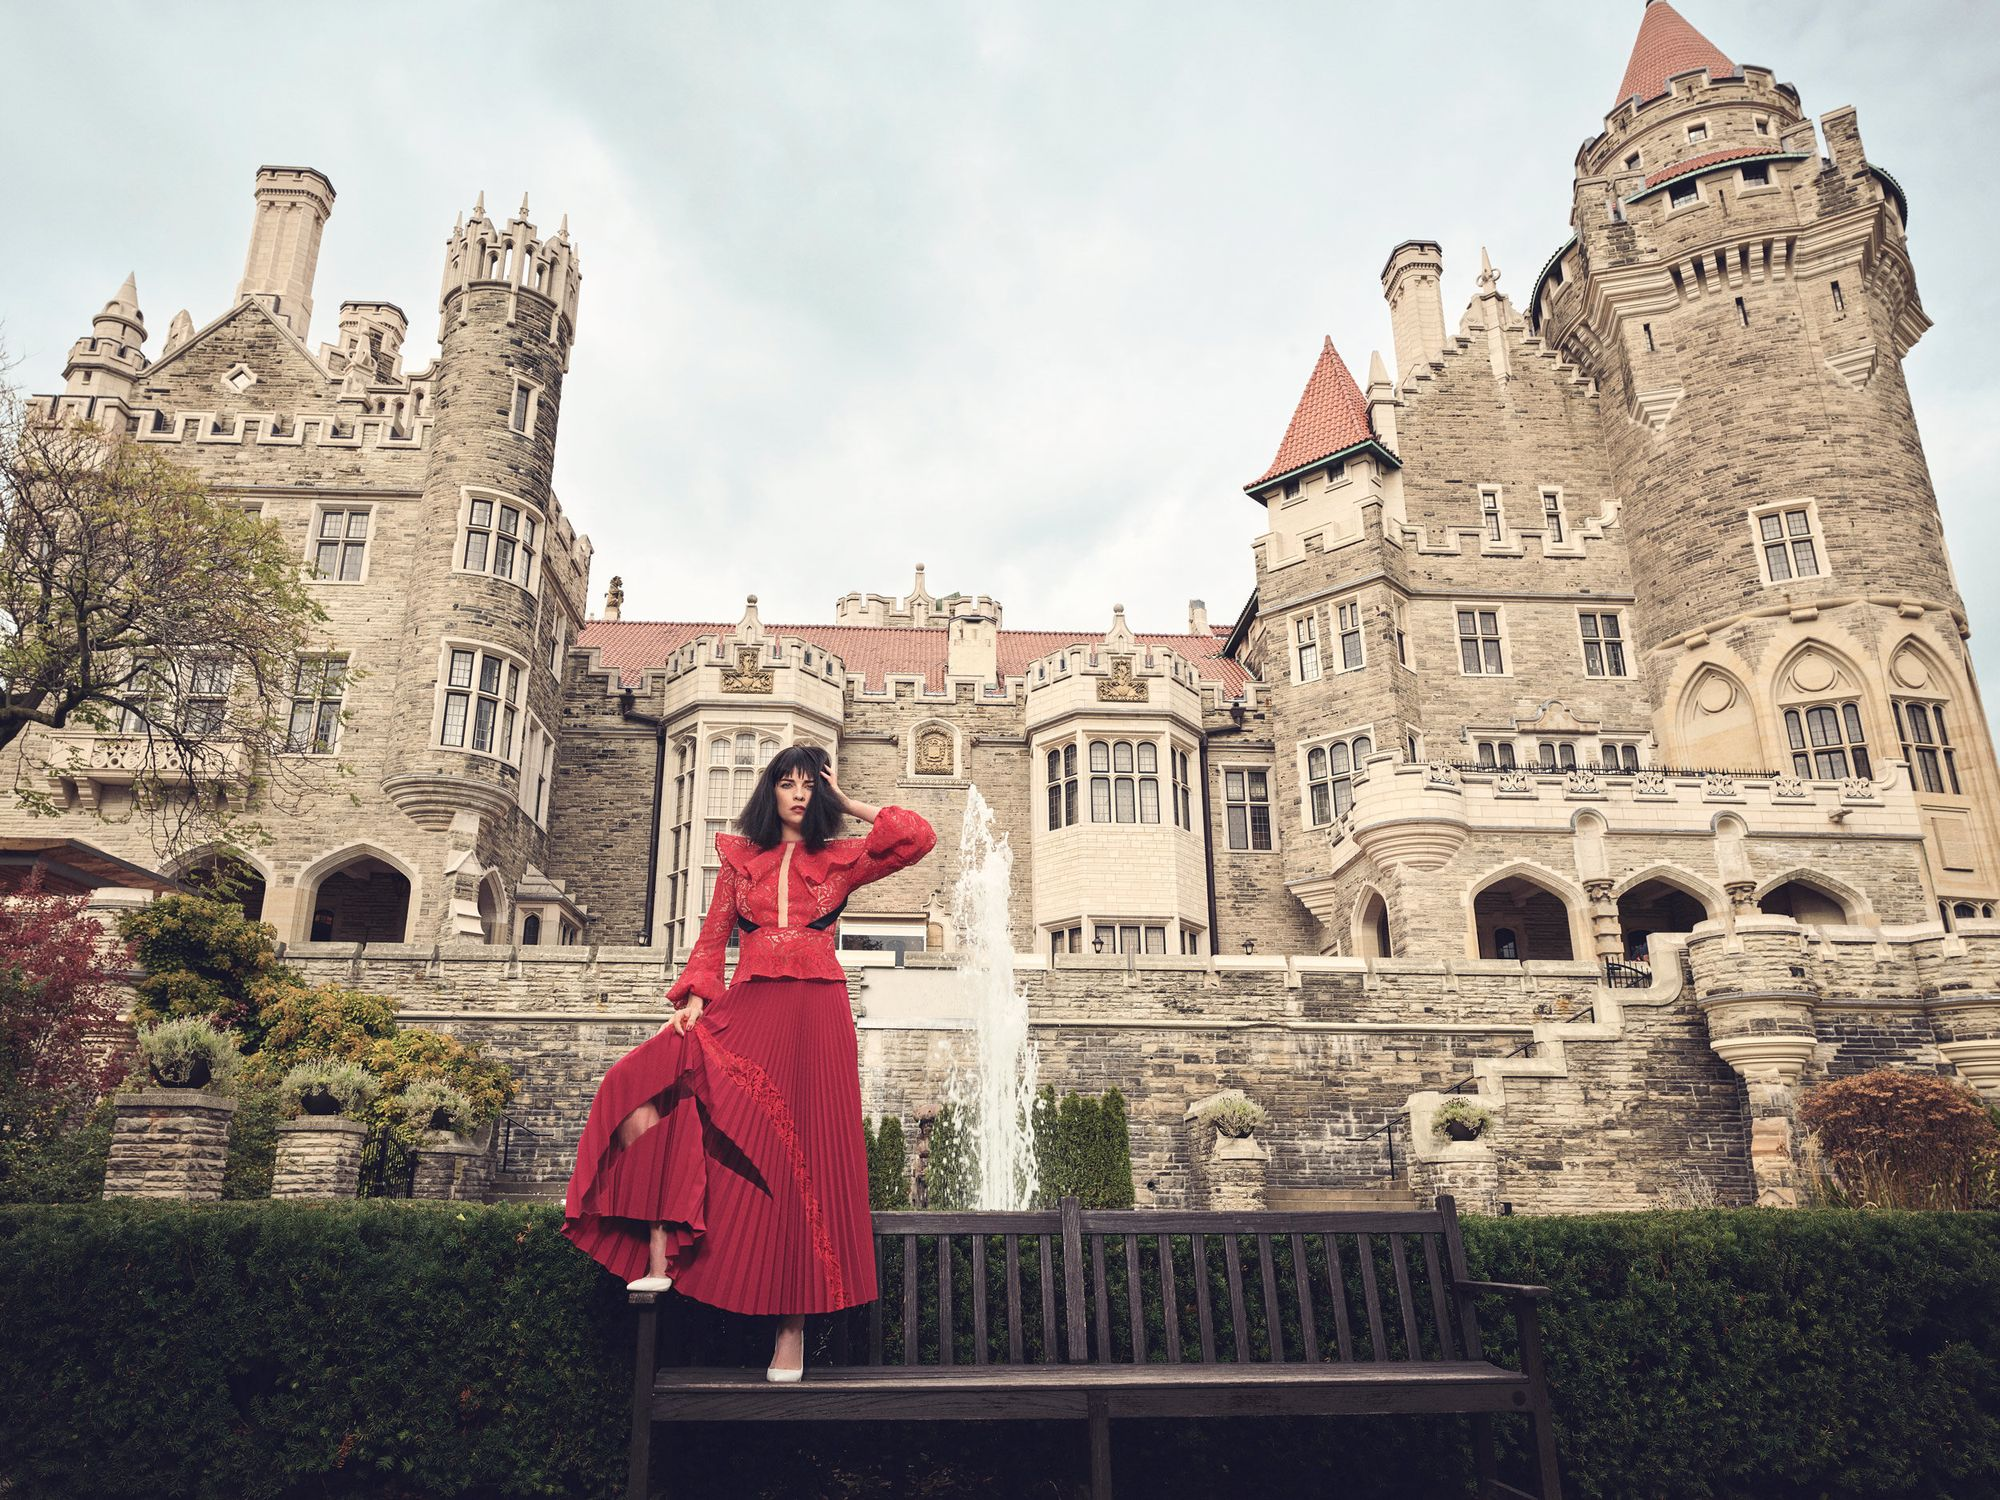 Annie Murphy in red in front of a castle.